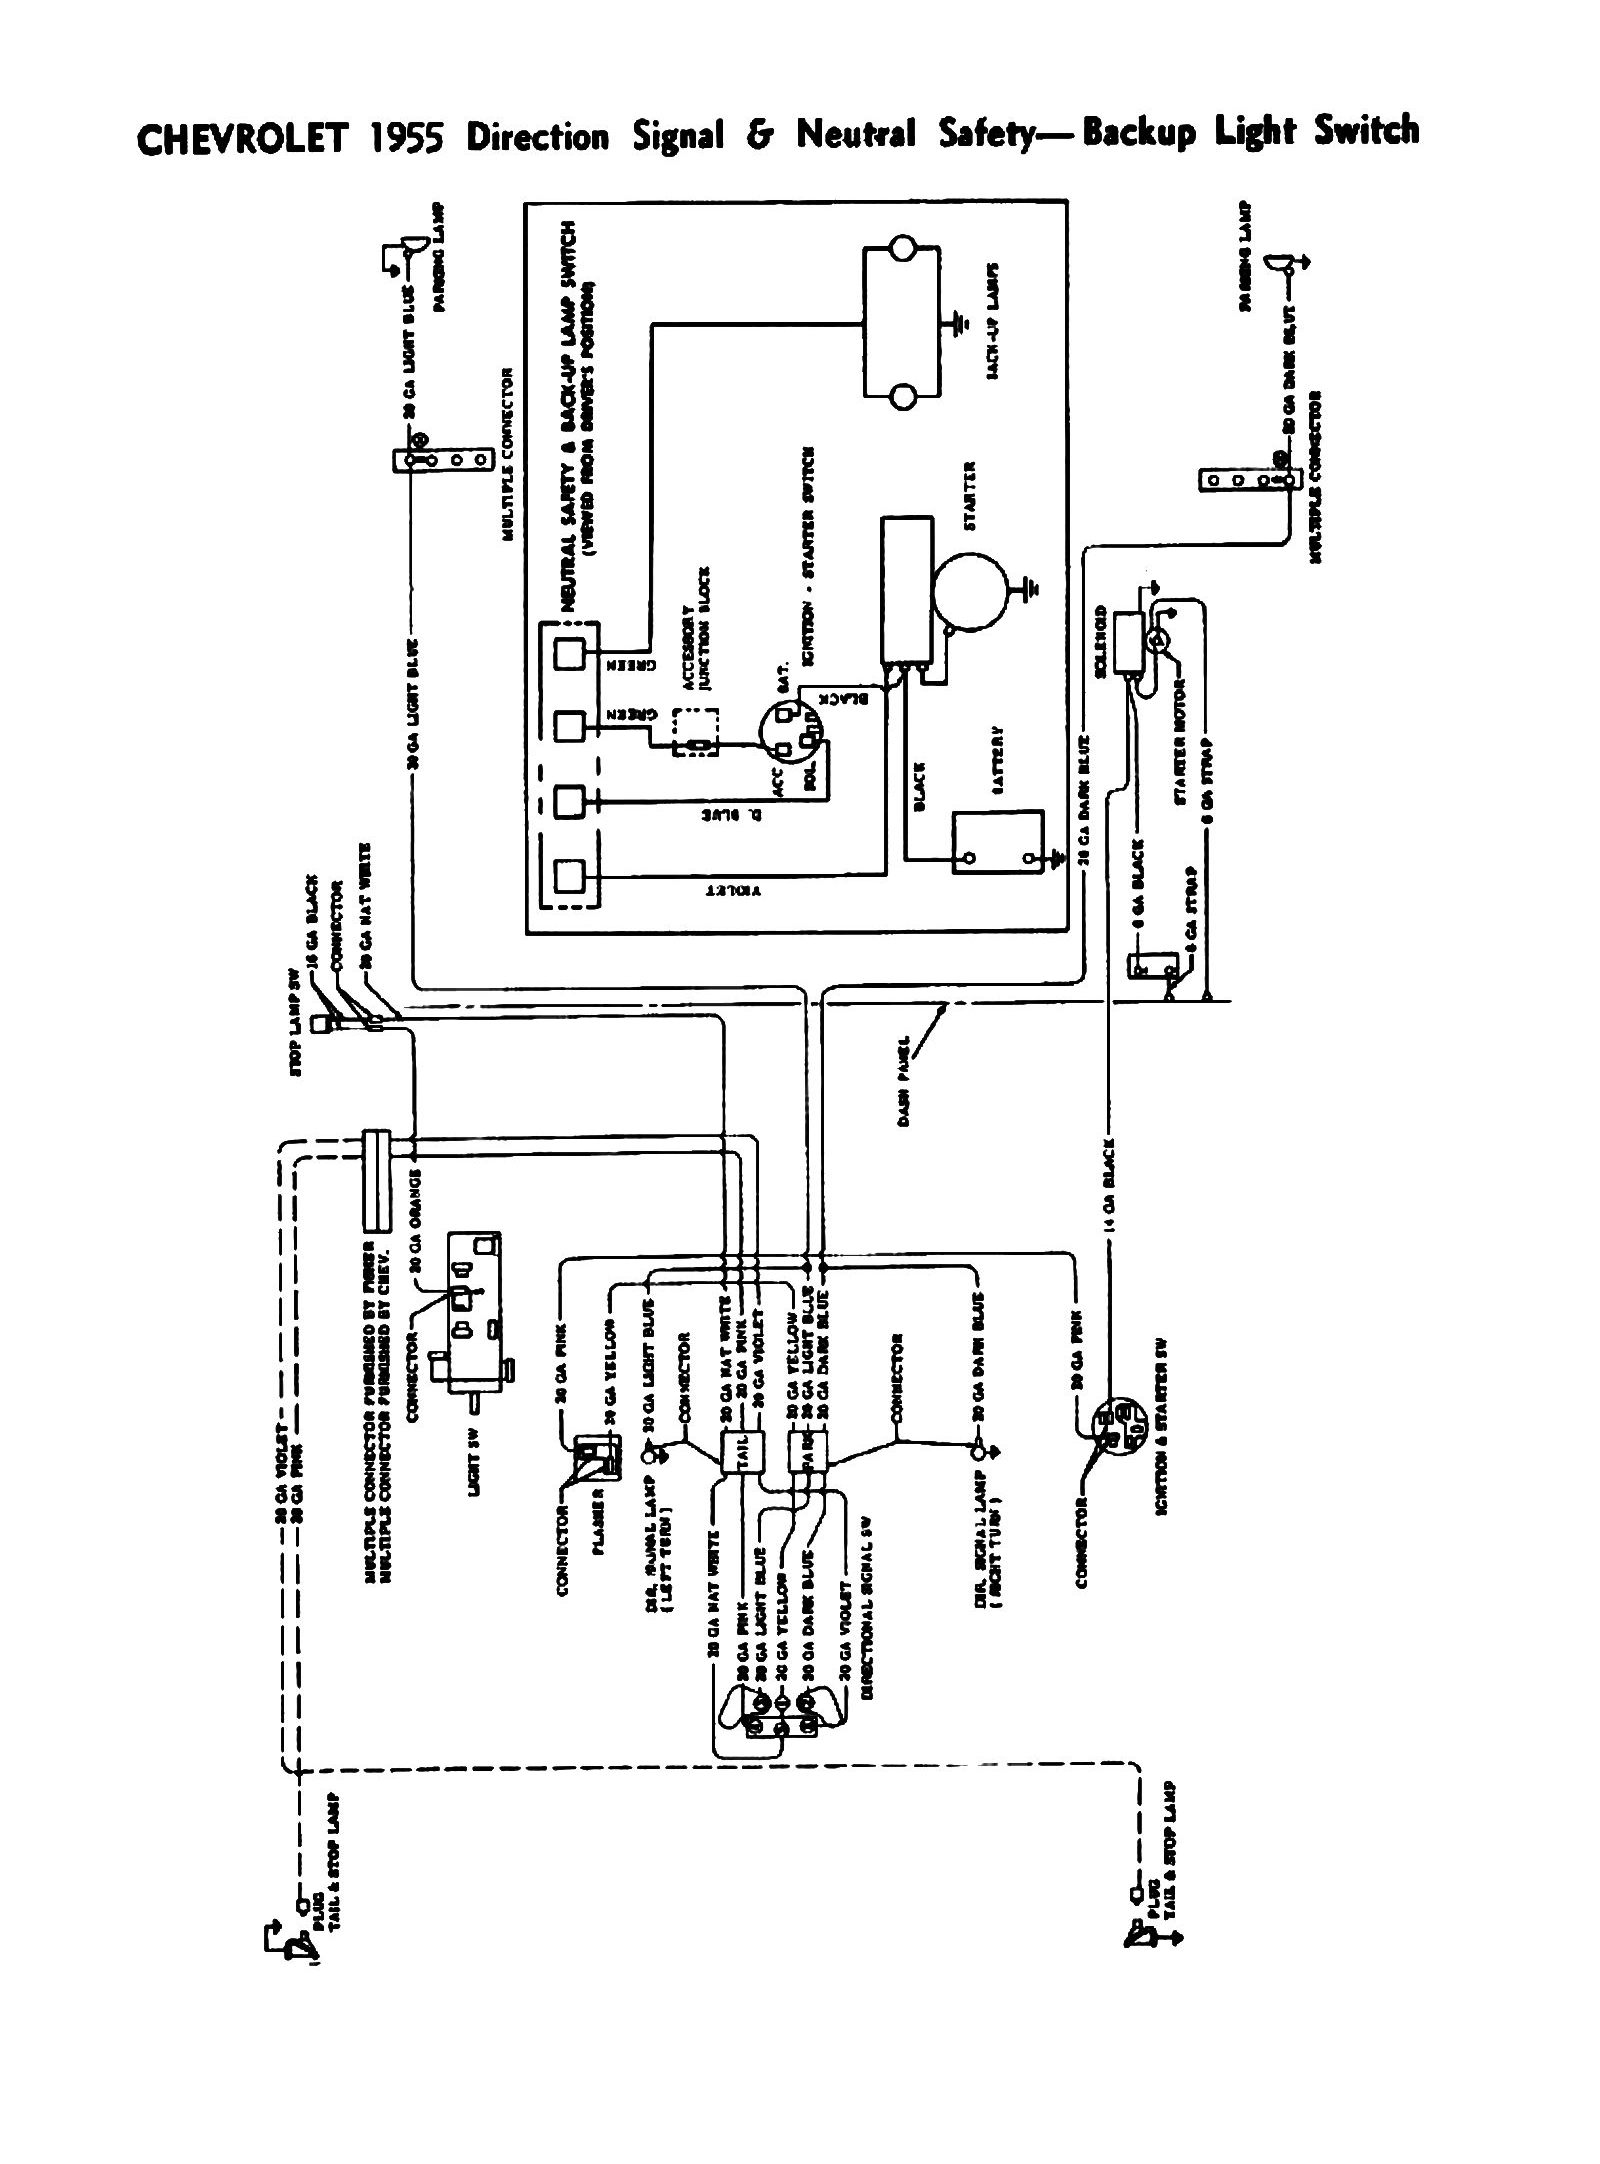 1957 ford wiring diagram data wiring diagram 1962 Ford Truck Wiring Diagram chevy wiring diagrams ford fairlane wiring diagram 1955 directional signals, neutral safety \u0026 backup switches